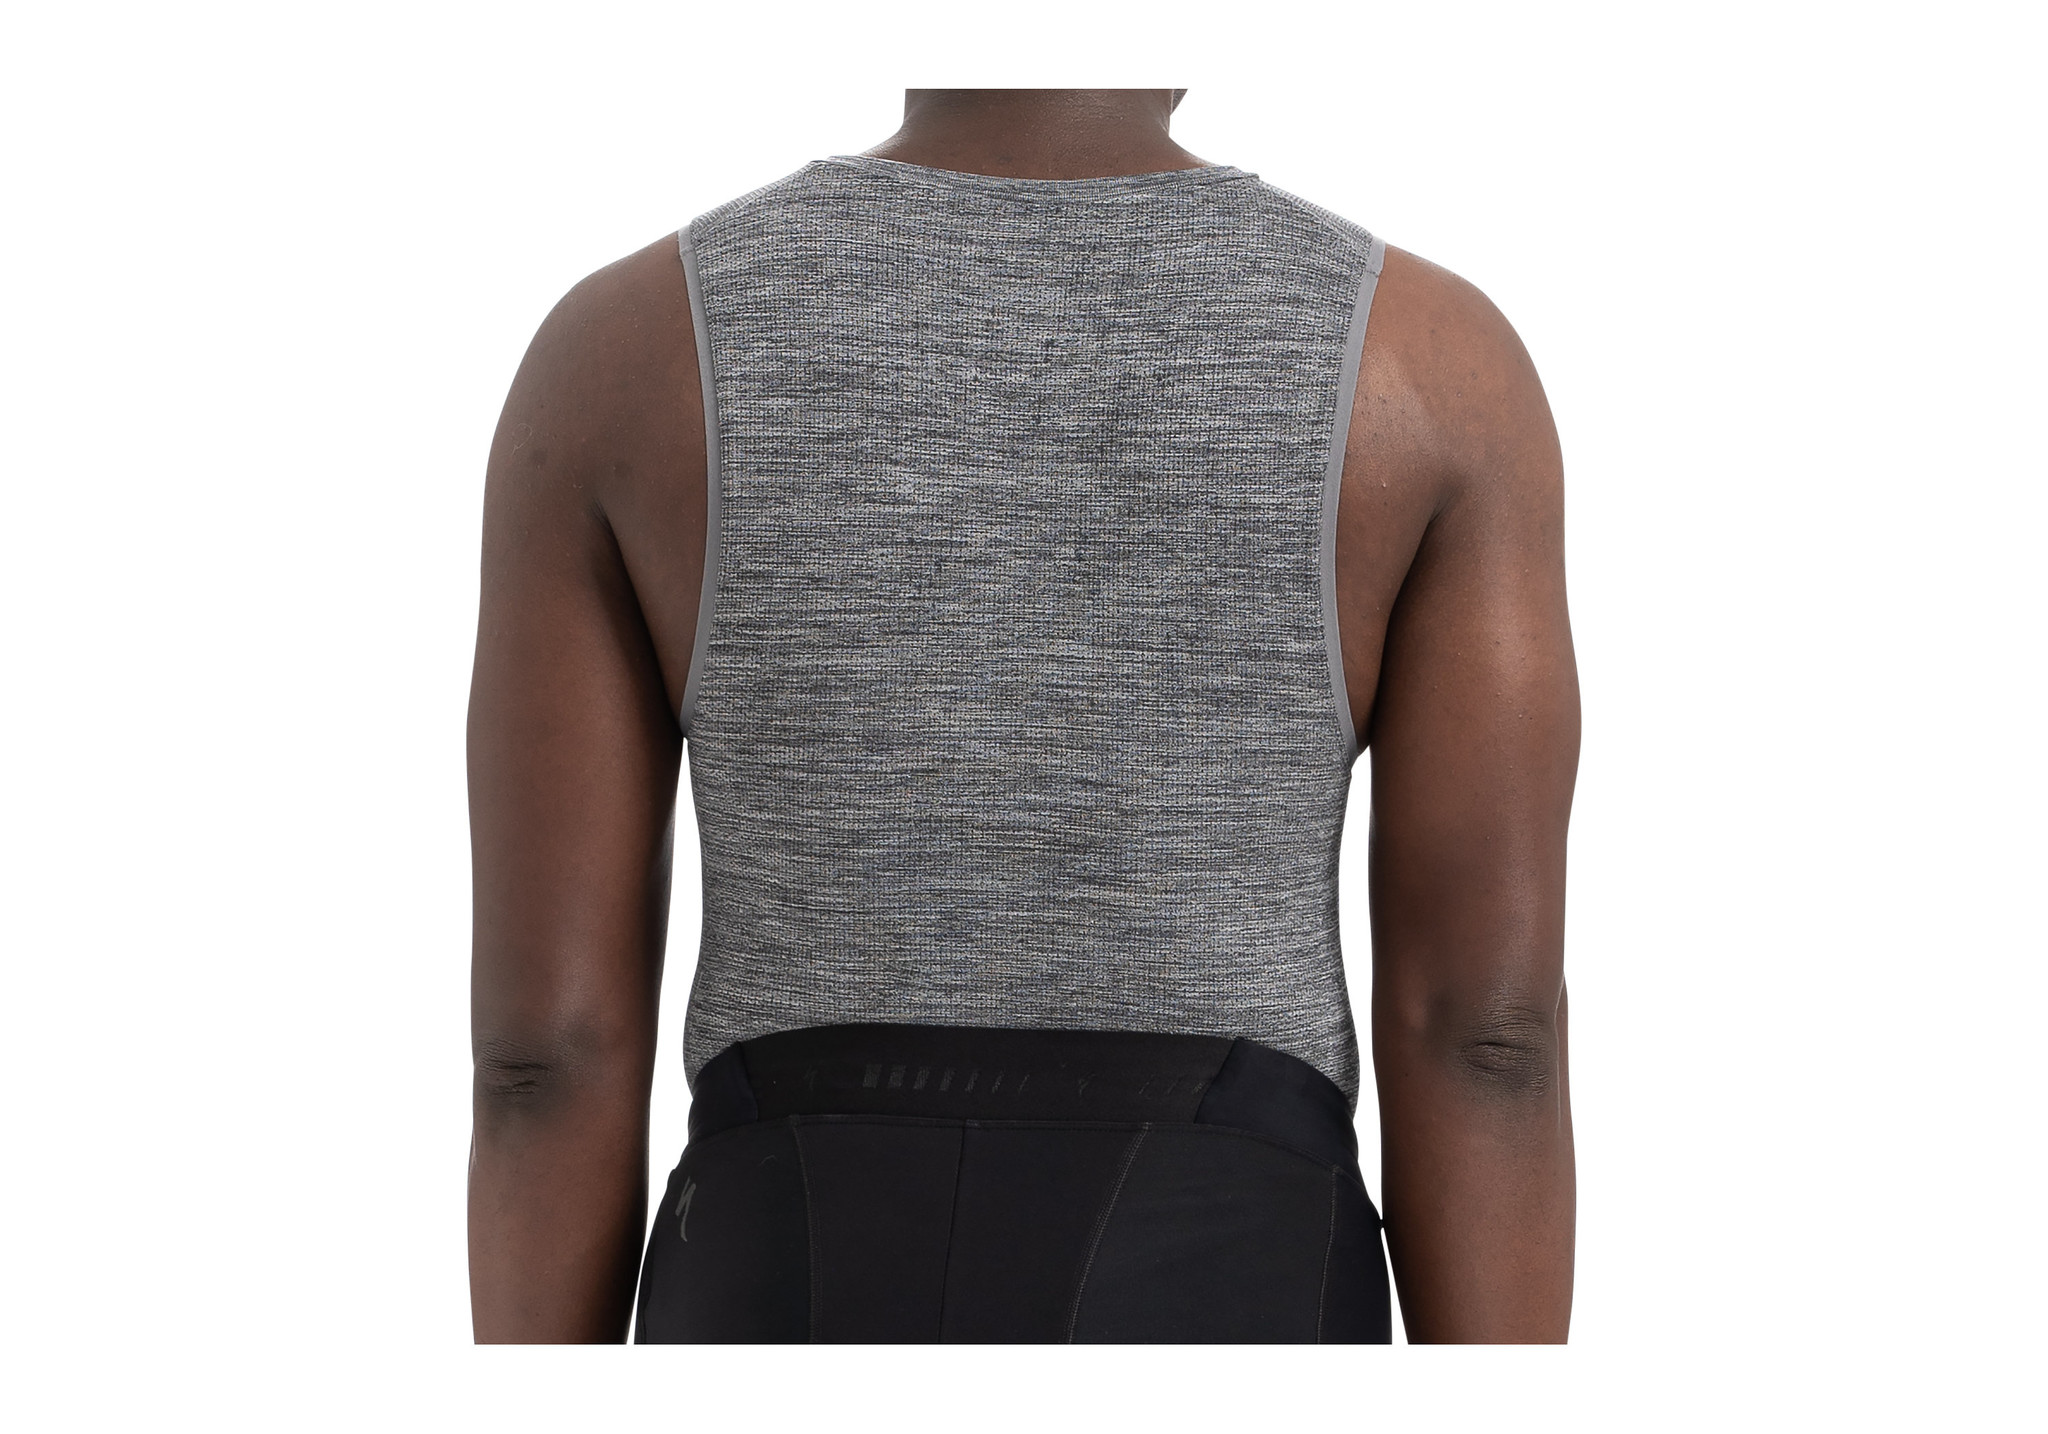 Specialized Specialized Seamless Sleeveless Base Layer